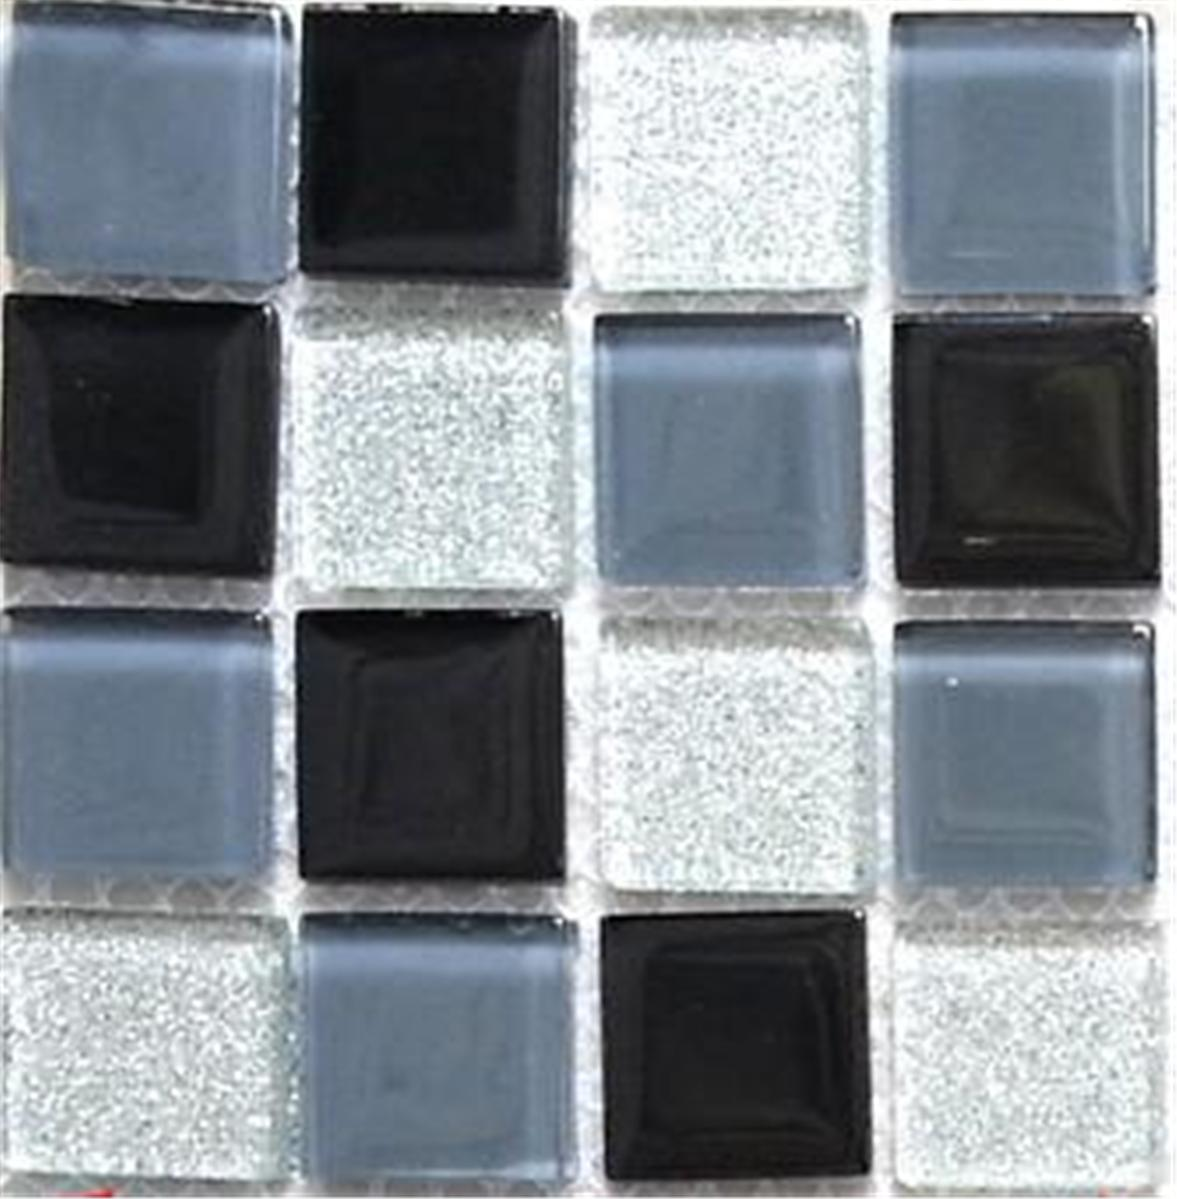 Silver Kitchen Wall Tiles: Mosaic Tiles Glass Black Grey Silver Bathroom Kitchen Wall